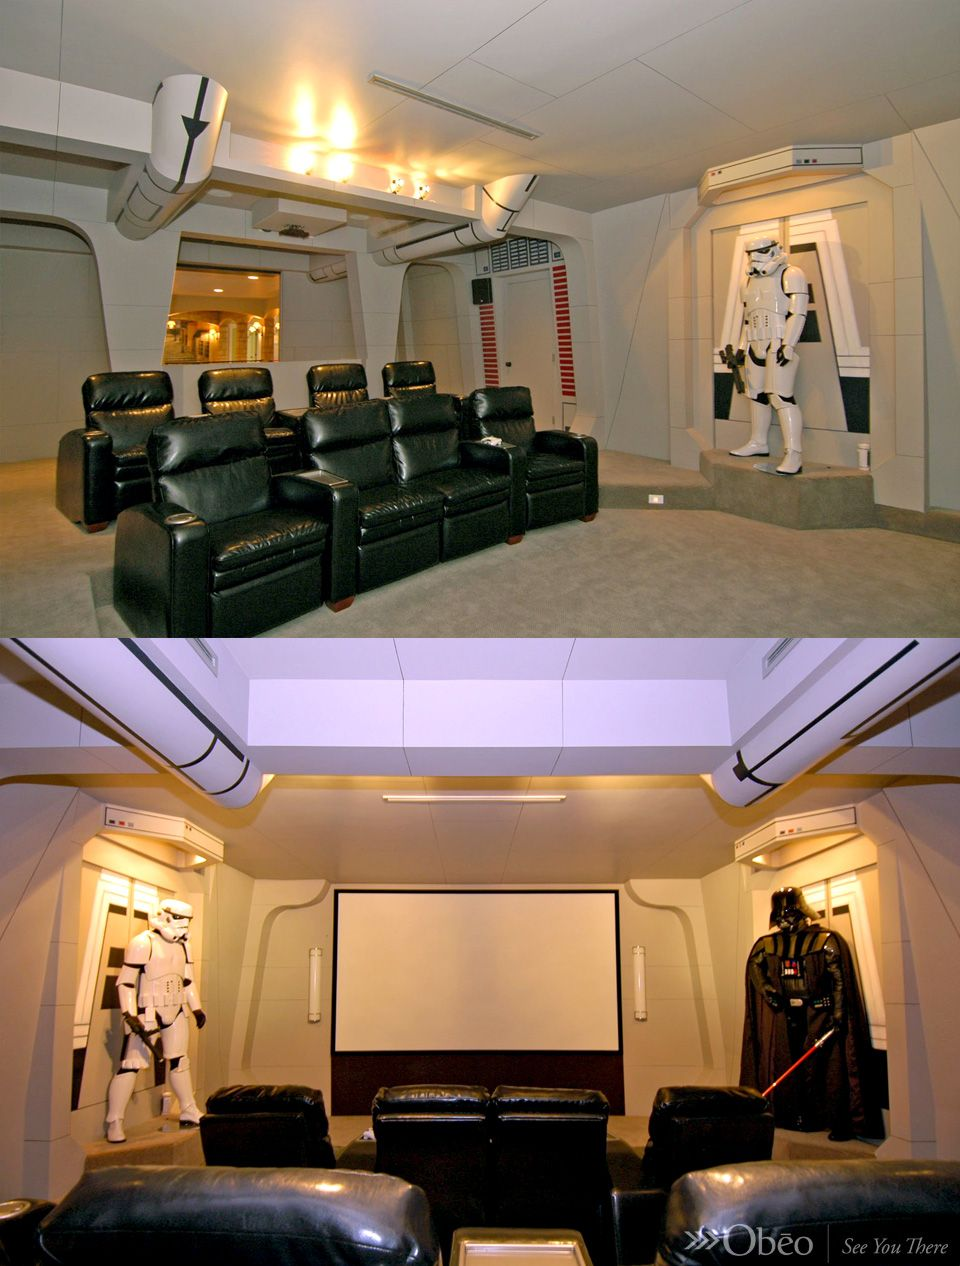 Star Wars Home Theater Room I wonder if they have have the whole series of movies  Theater